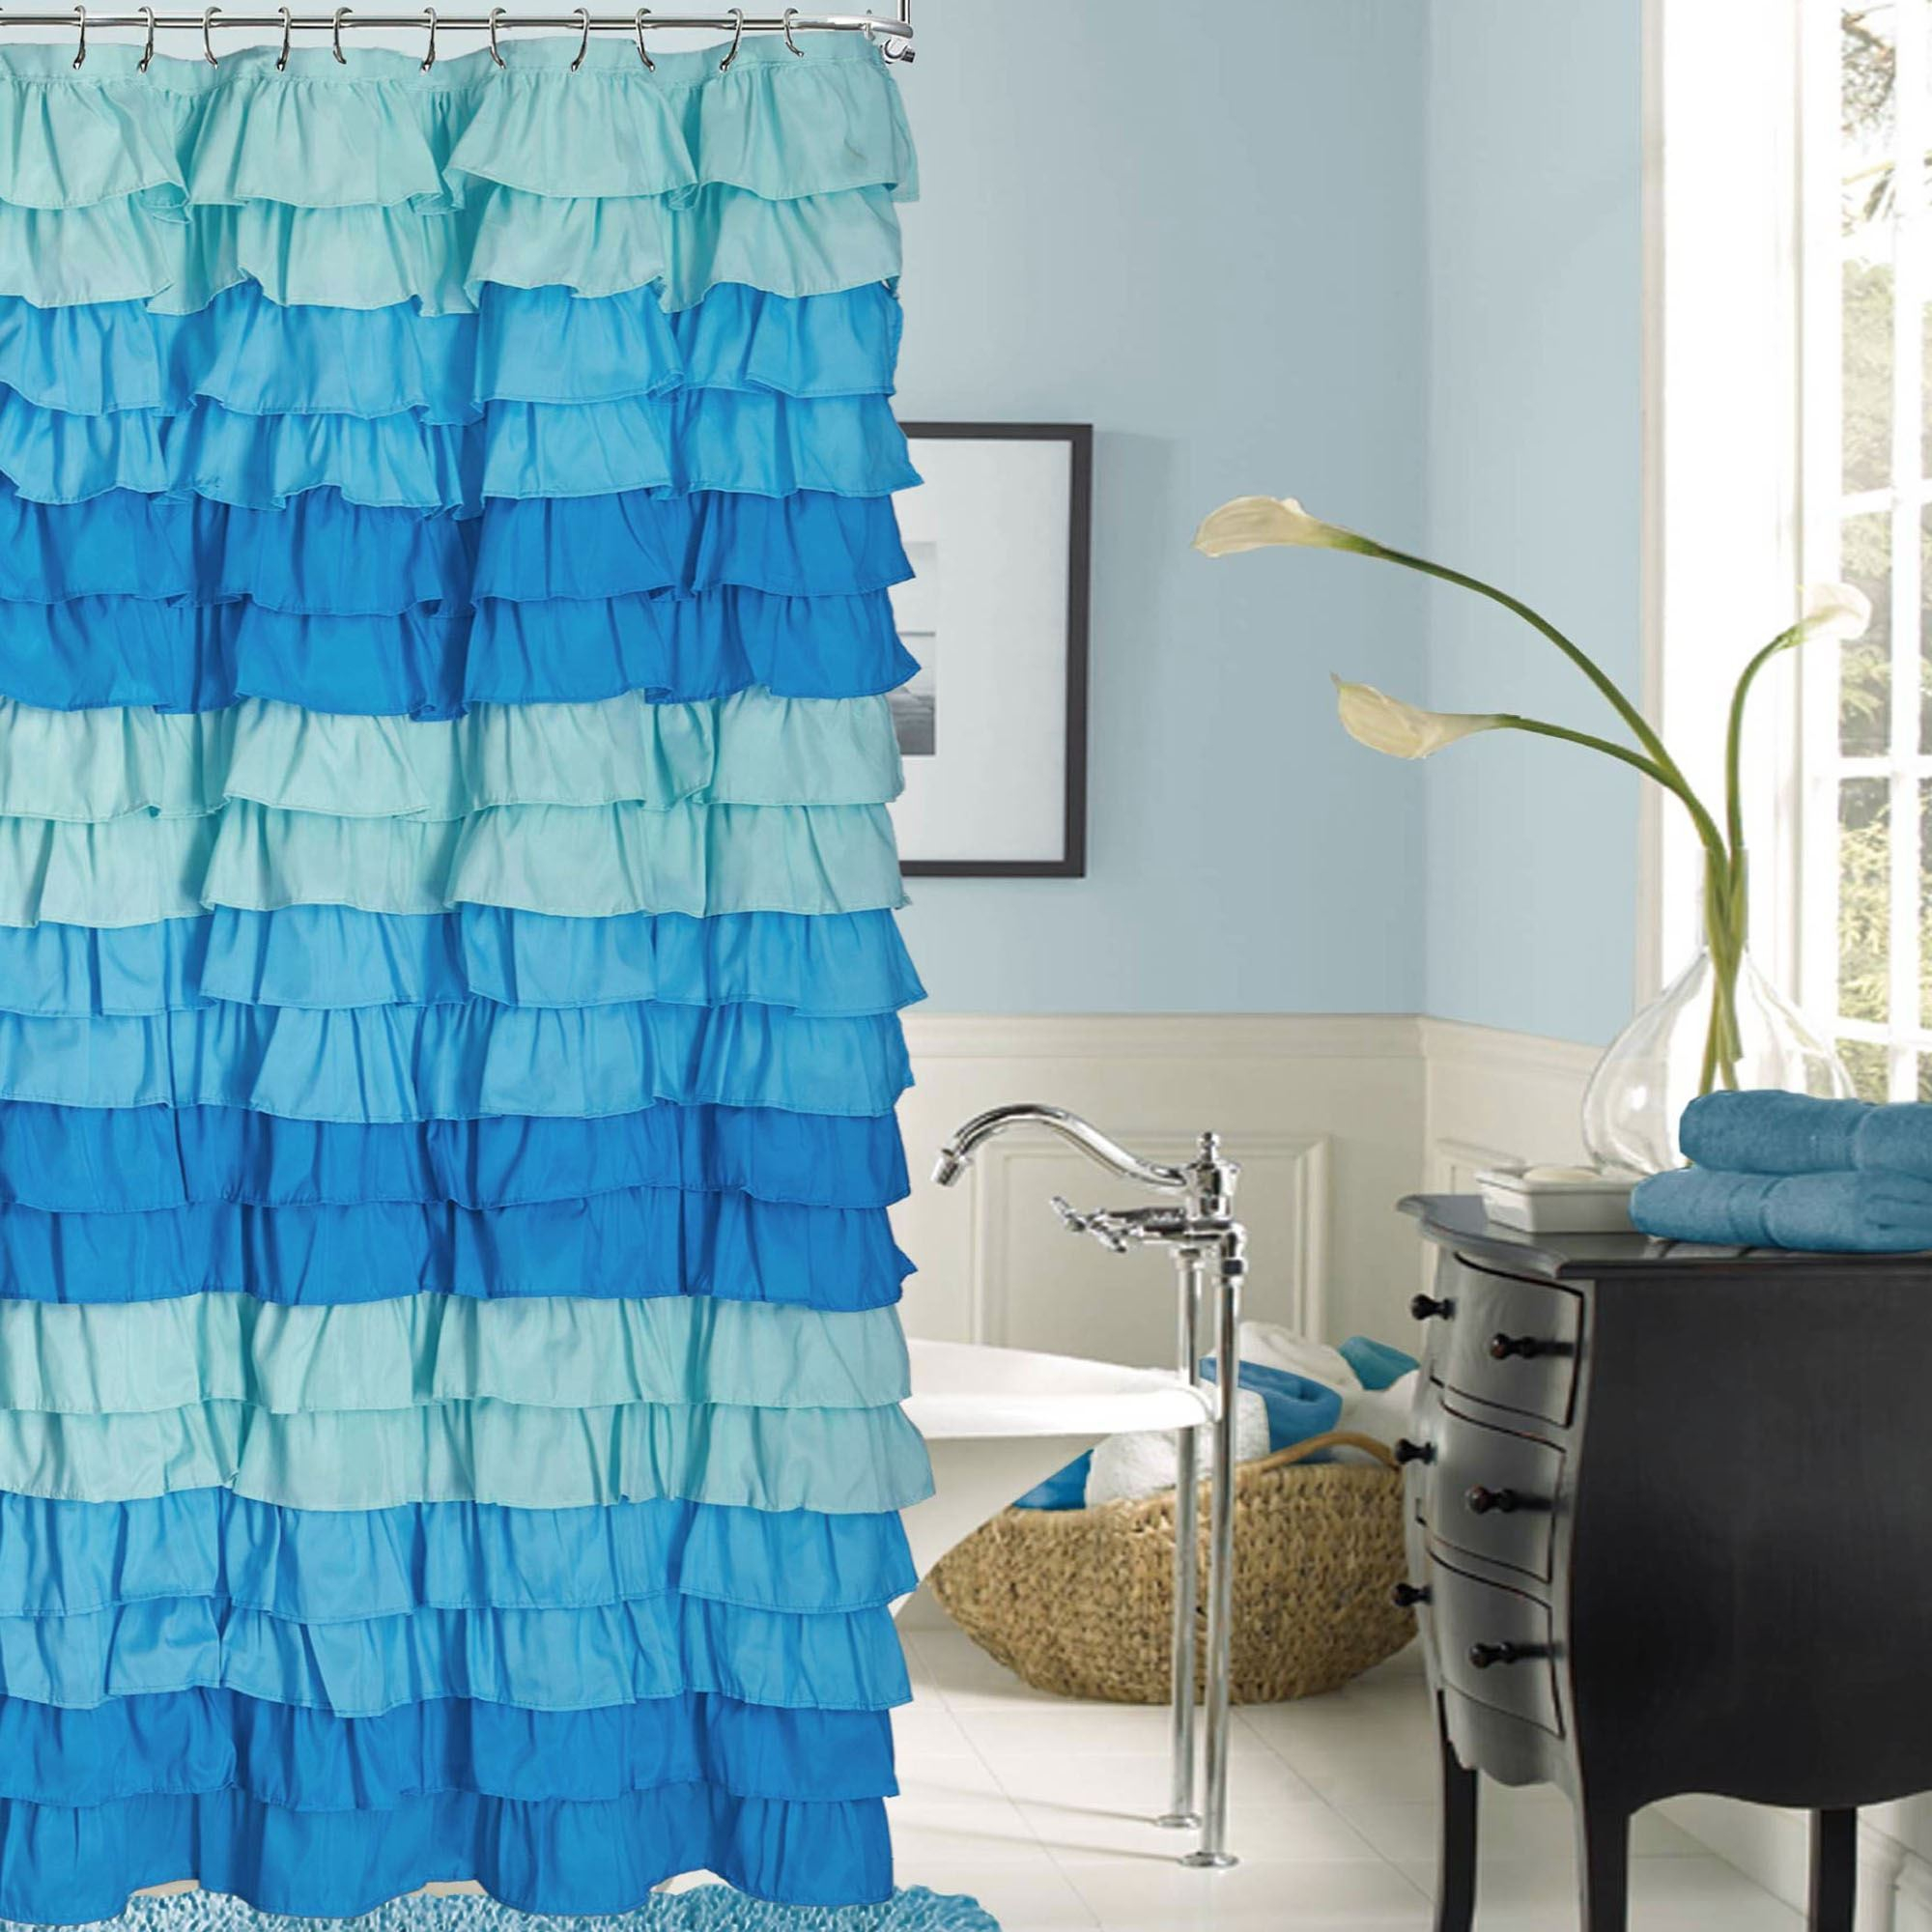 Venezia French Blue Ombre Ruffled Shower Curtain within sizing 2000 X 2000